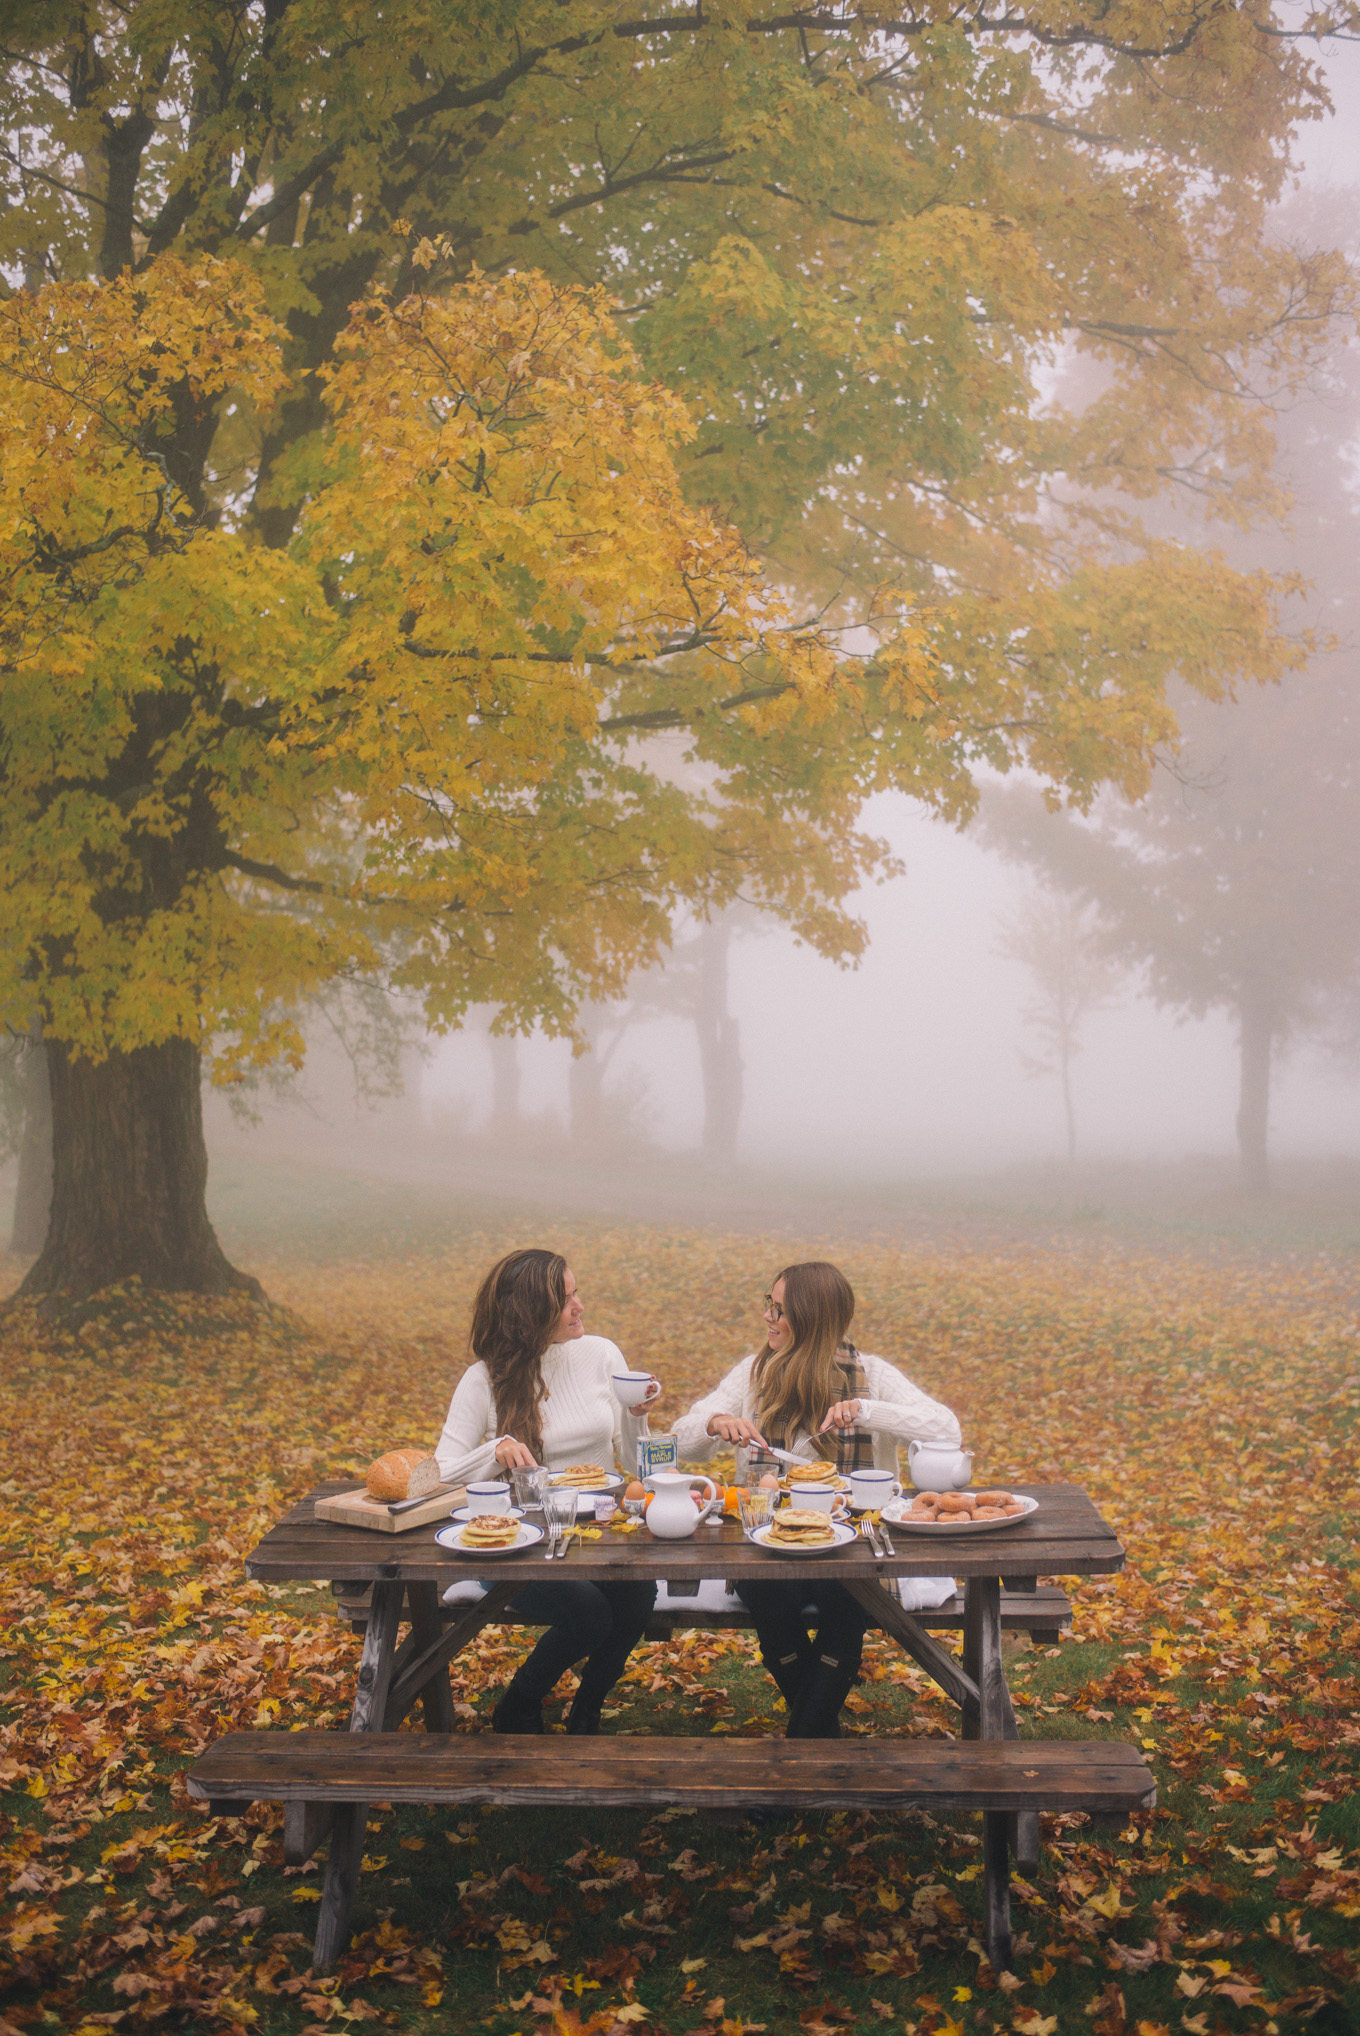 gmg-vermont-foggy-morning-1003643